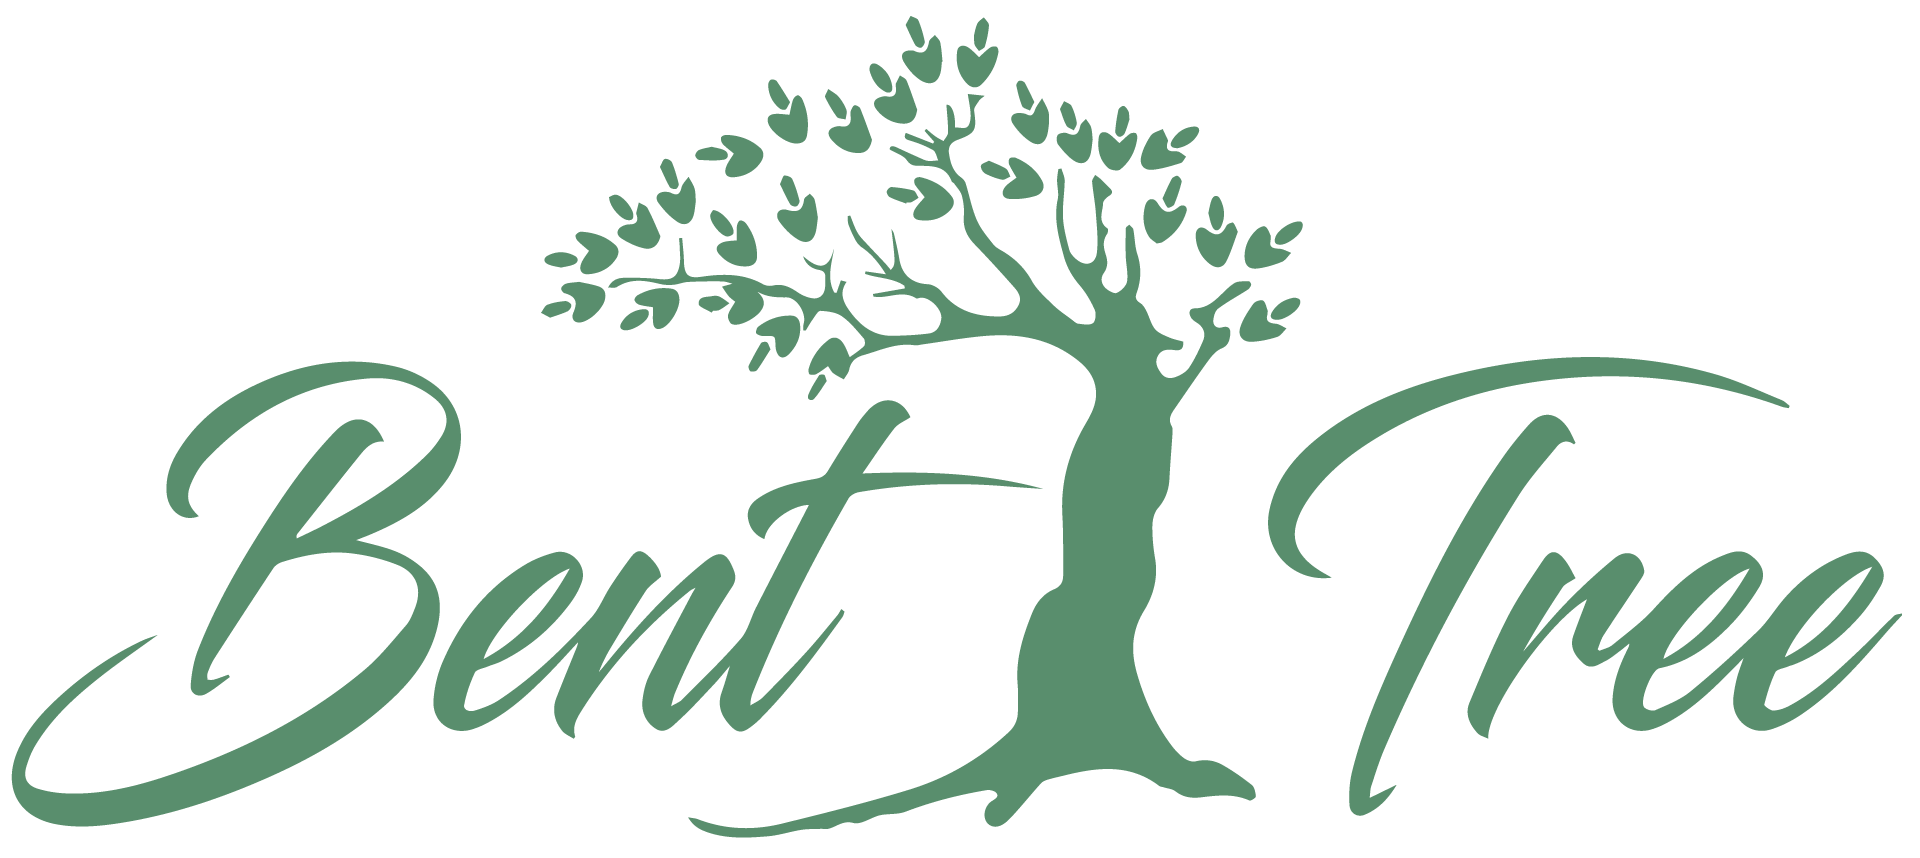 Bent Tree and Opus Creo – A Match Made in Heaven